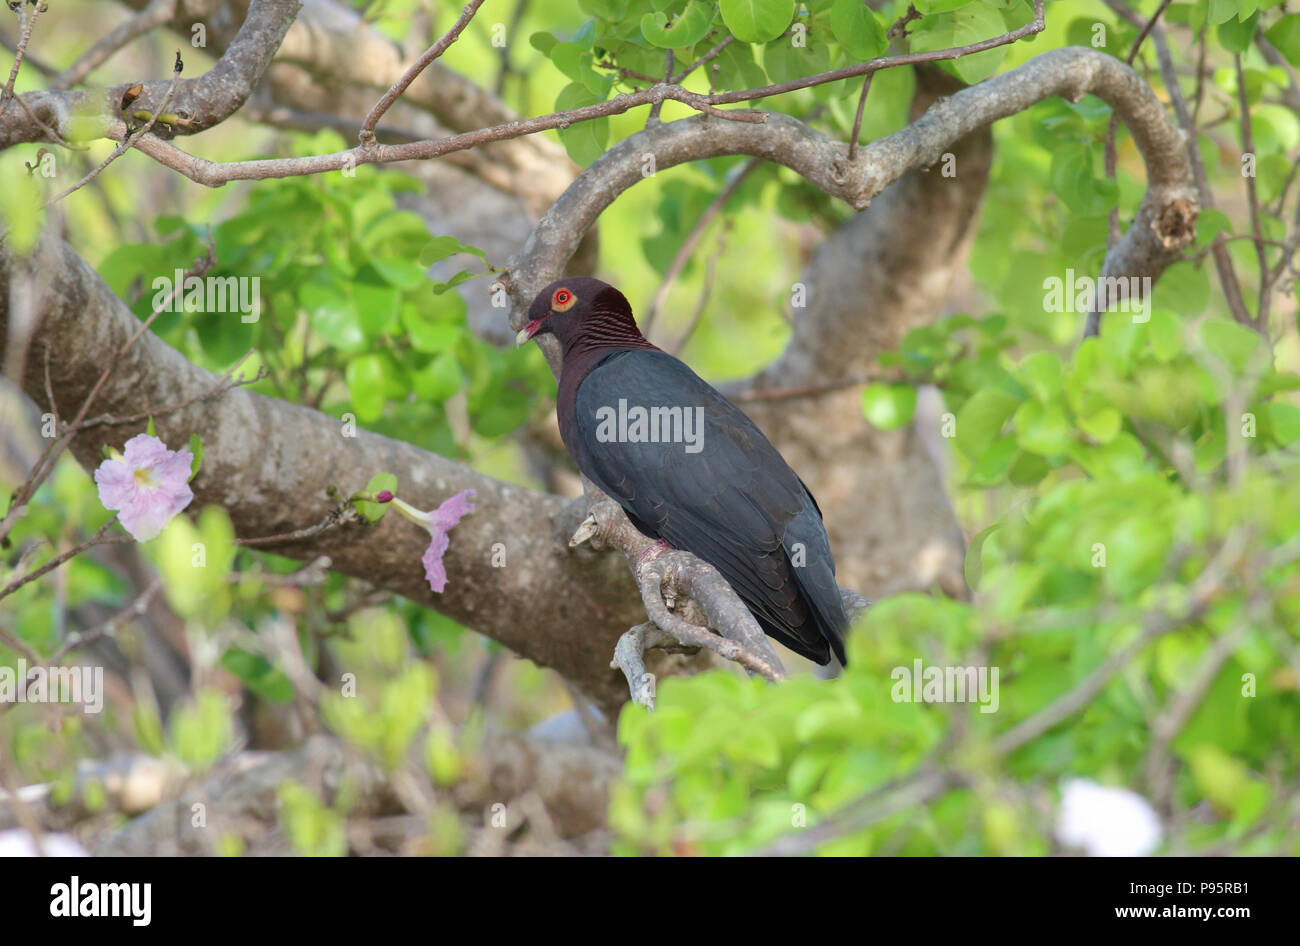 Scaly-naped Pigeon, taken on St. John's in the US Virgin Islands - Stock Image